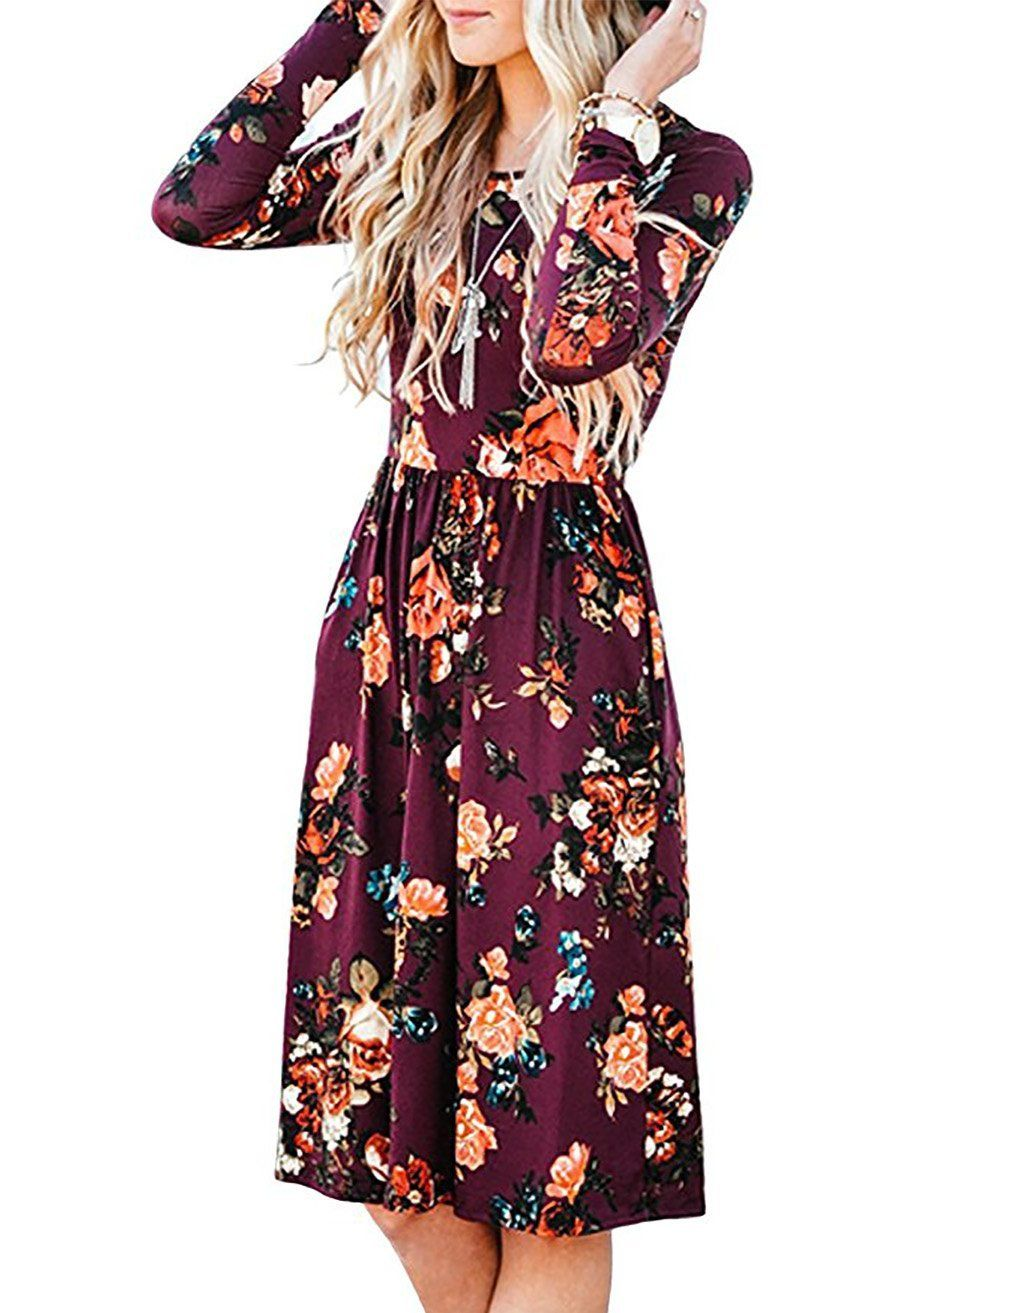 0d941d75d1 EMVANV Women's Casual Swing Pleated Long Sleeve Floral Tshirt Dress With  Pocket at Amazon Women's Clothing store: